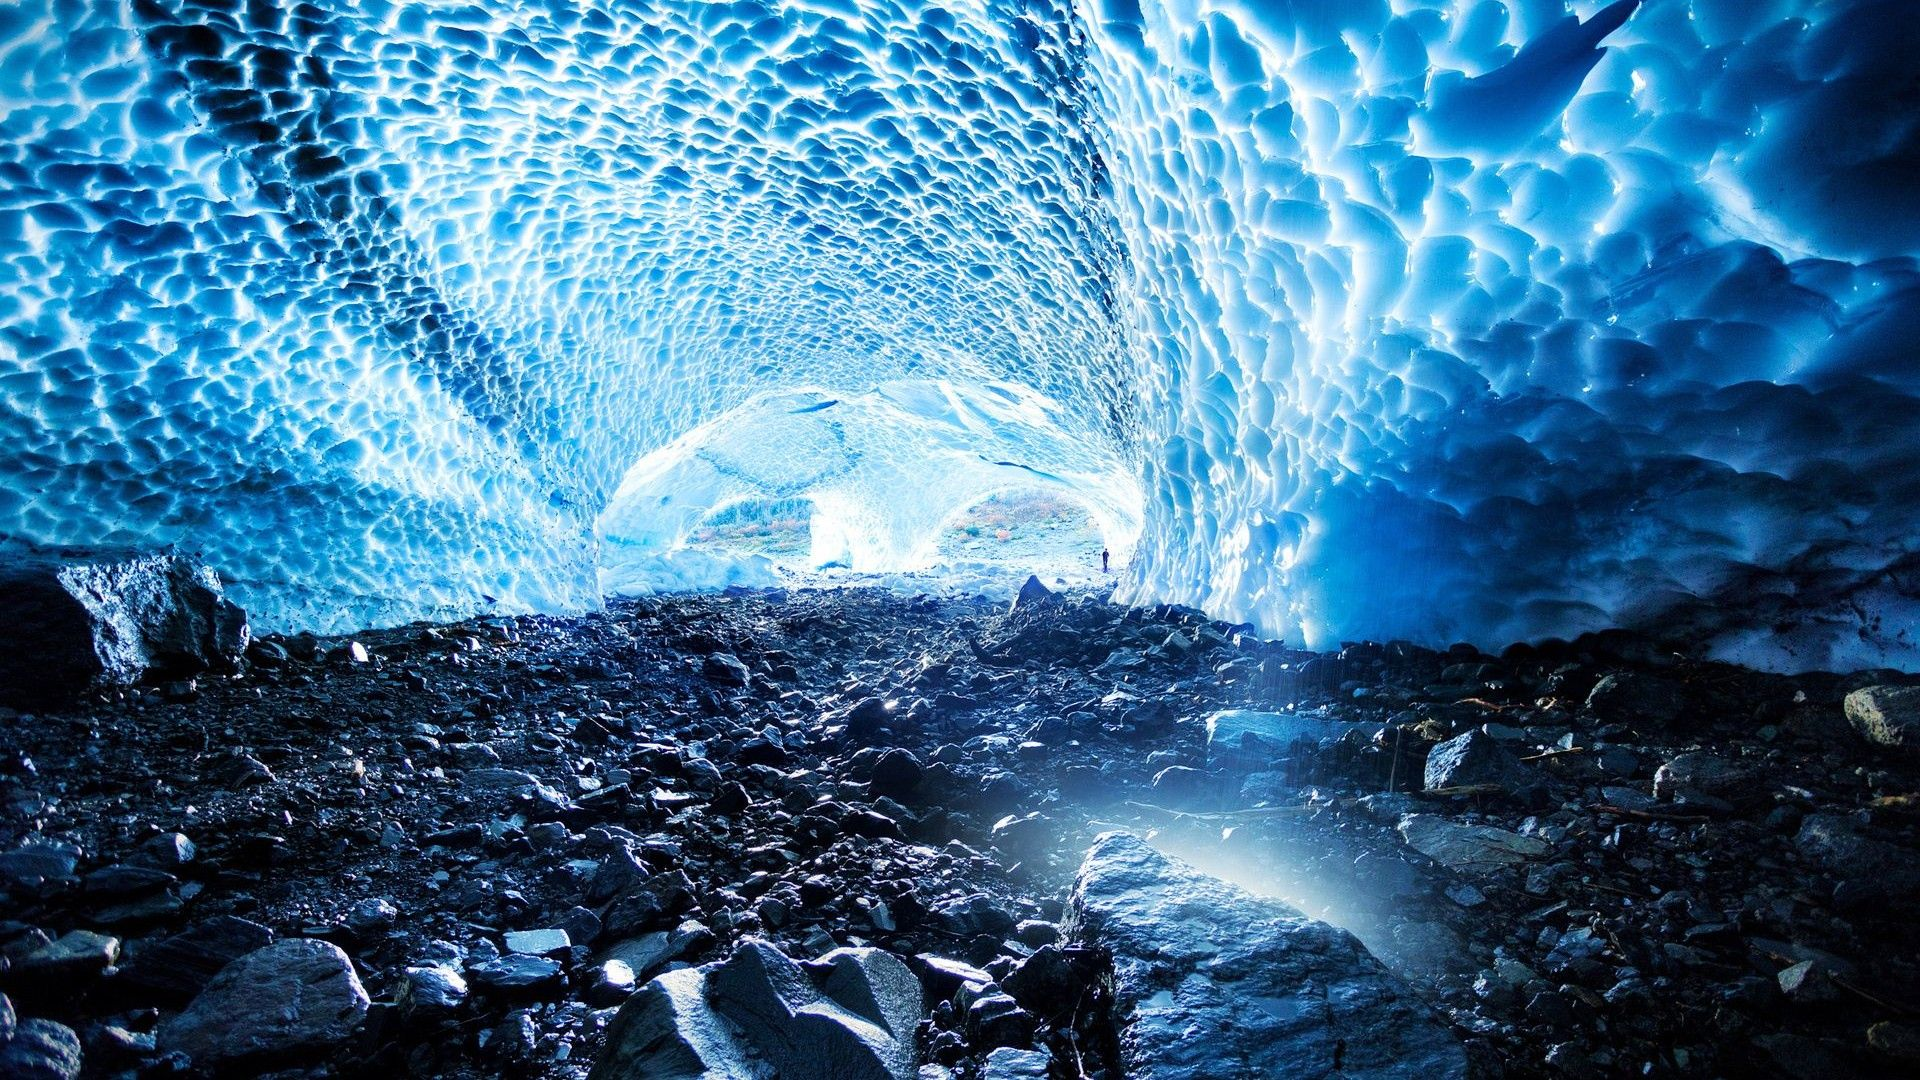 Ice Cave Washington New Wallpapers Forest Wallpaper